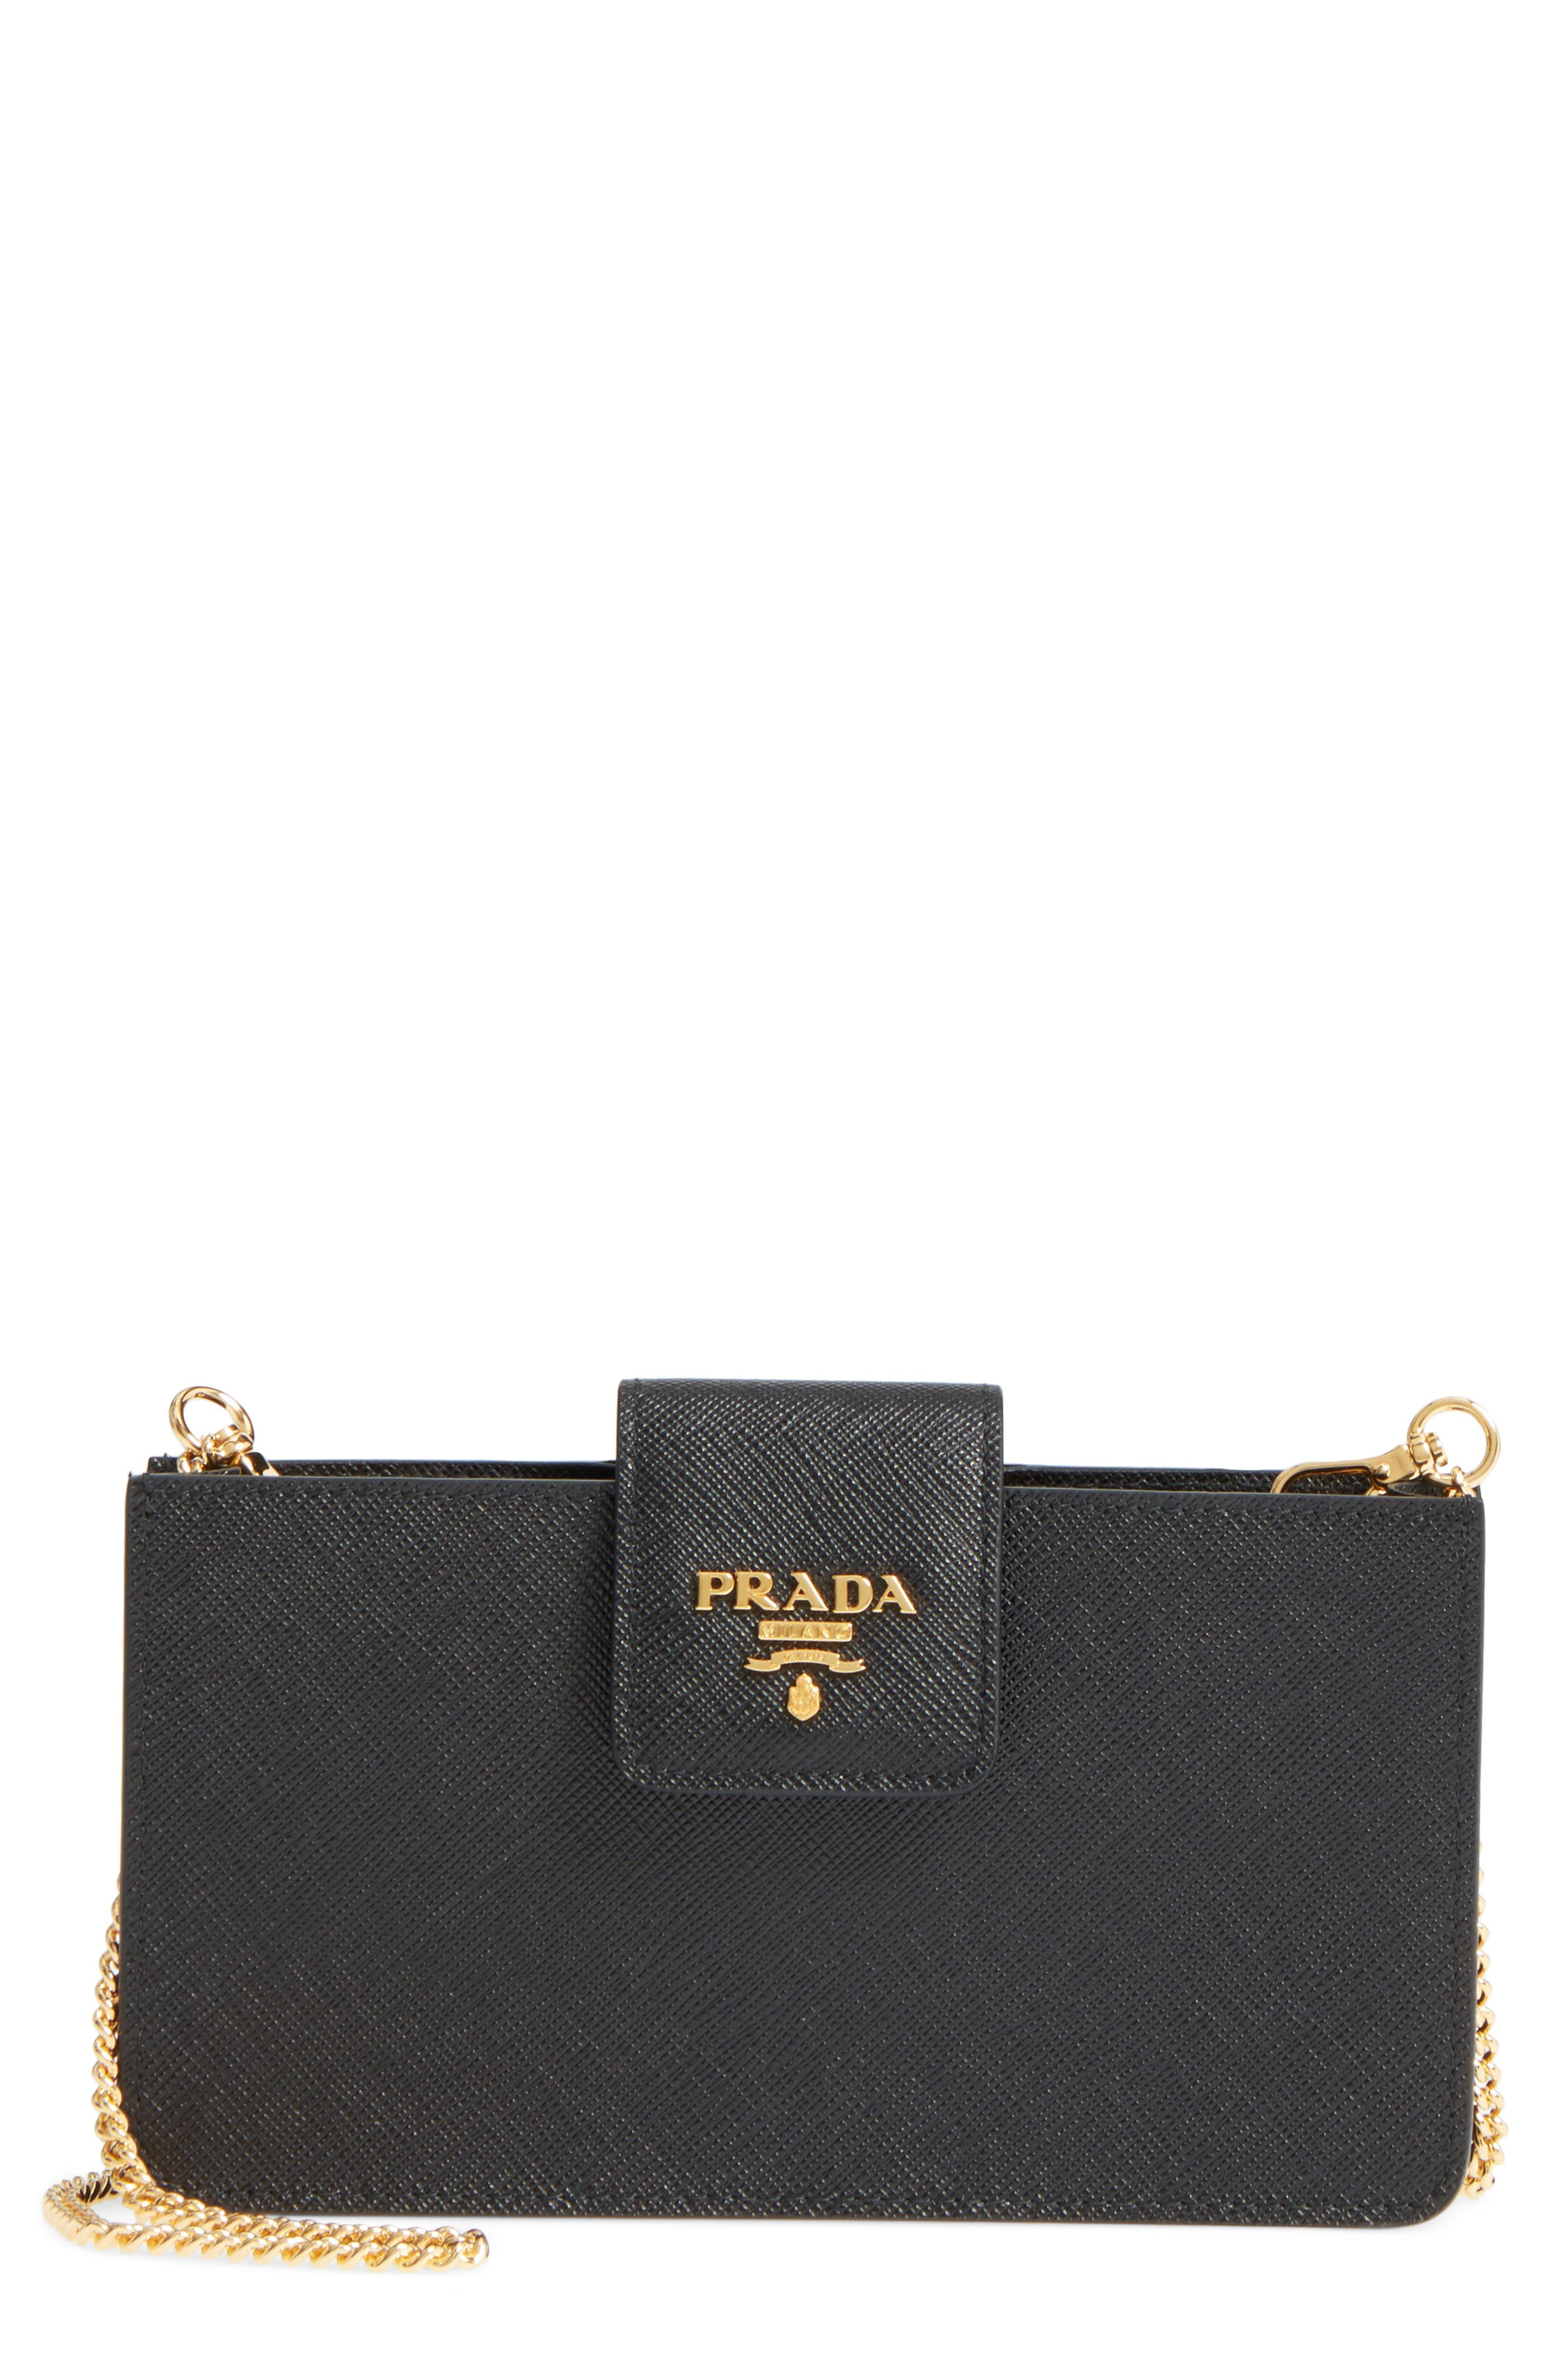 PRADA Saffiano Leather Phone Wallet on a Chain, Main, color, 001